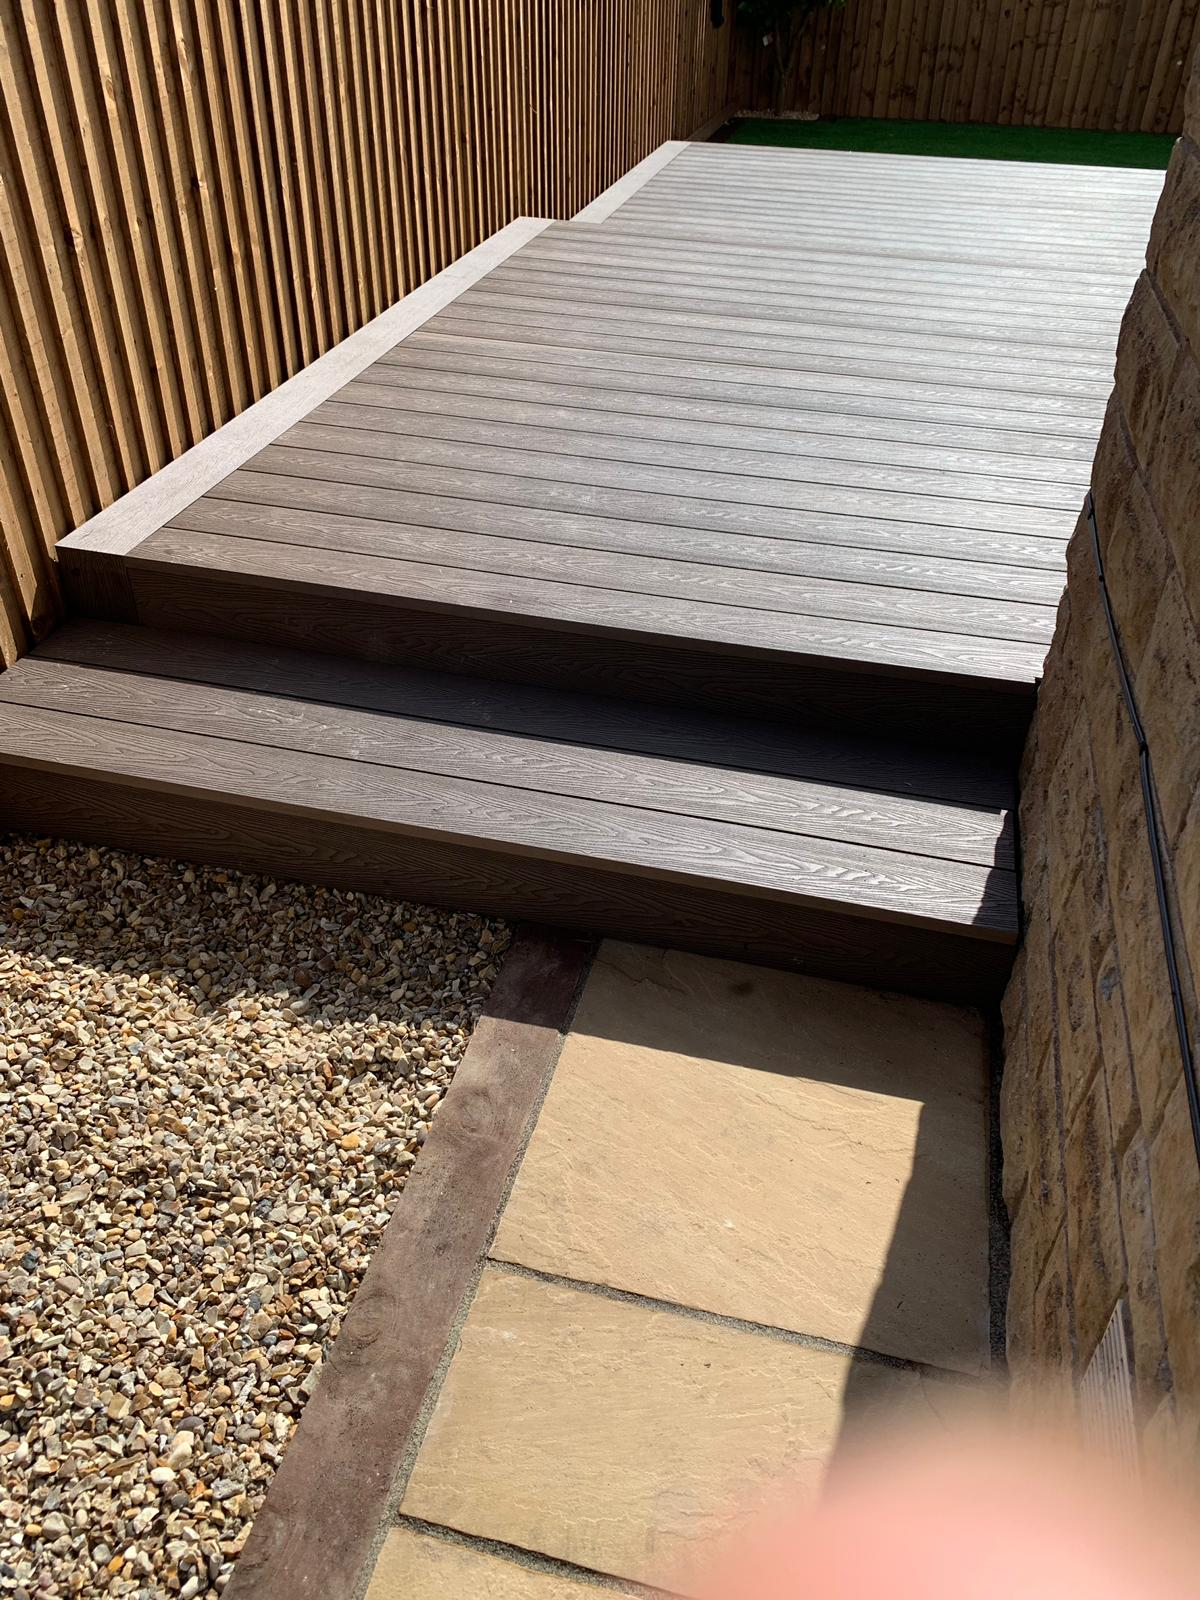 SET IN RAILWAY SLEEPERS WITH INDIAN SANDSTONE PAVING & FEATHER EDGE FENCING